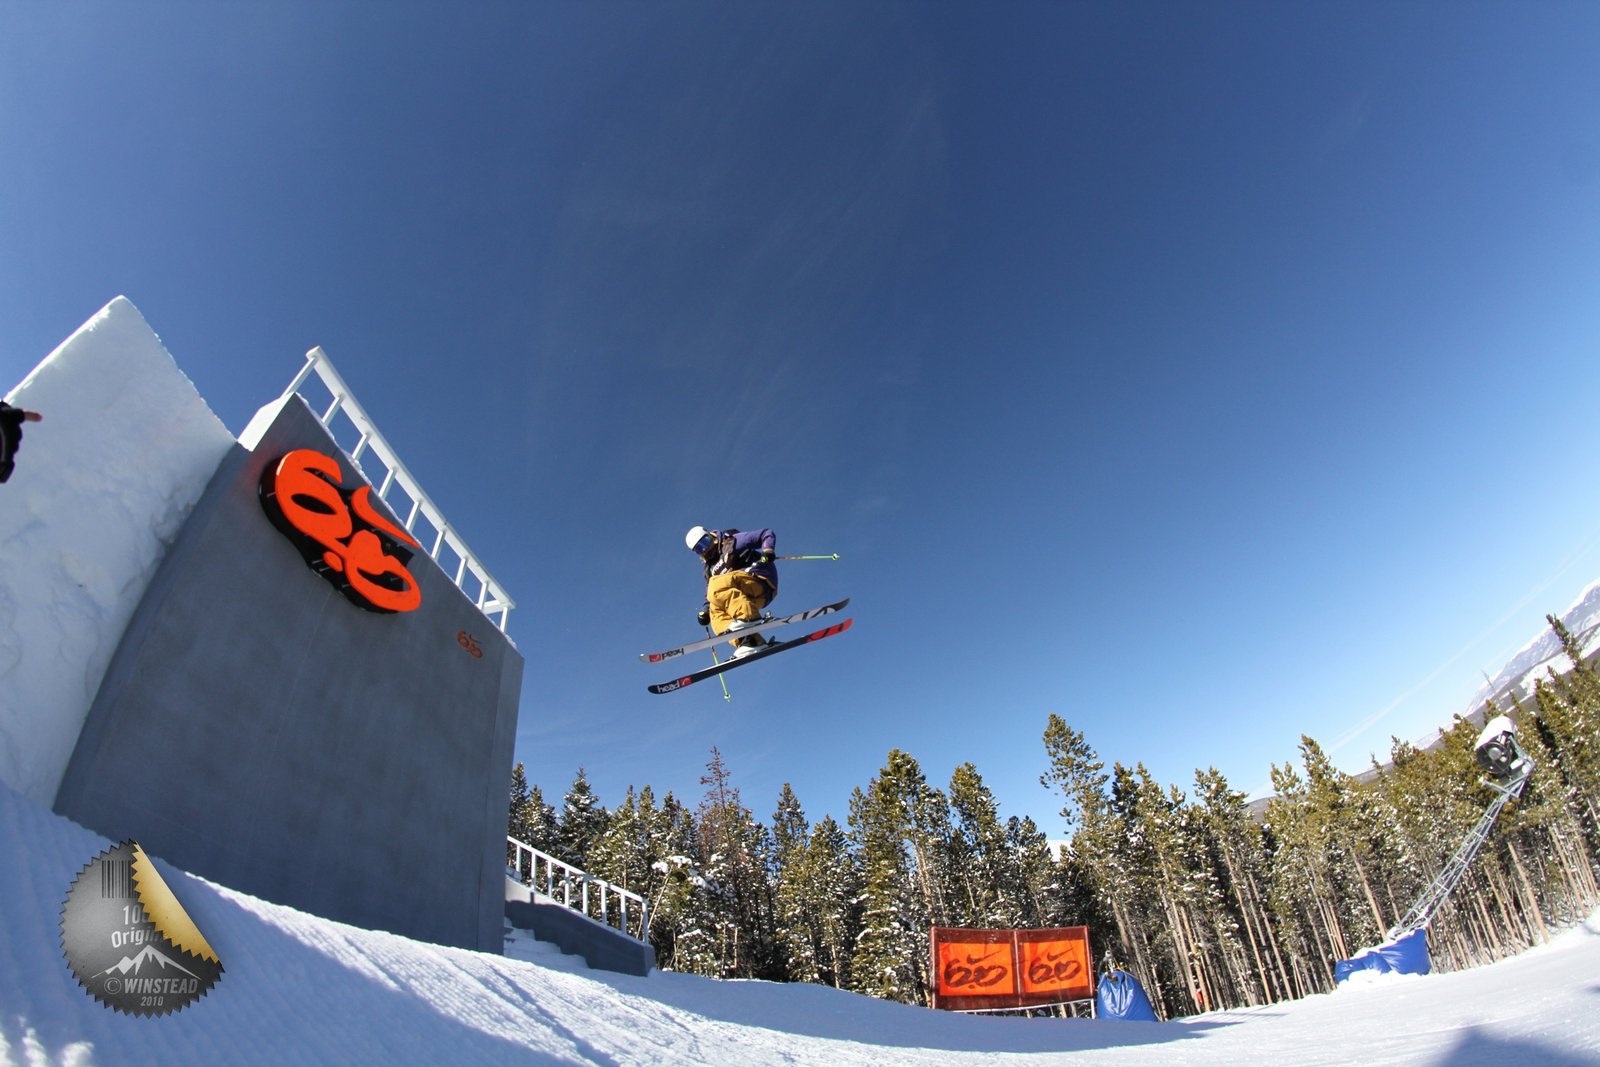 Winter Dew Tour